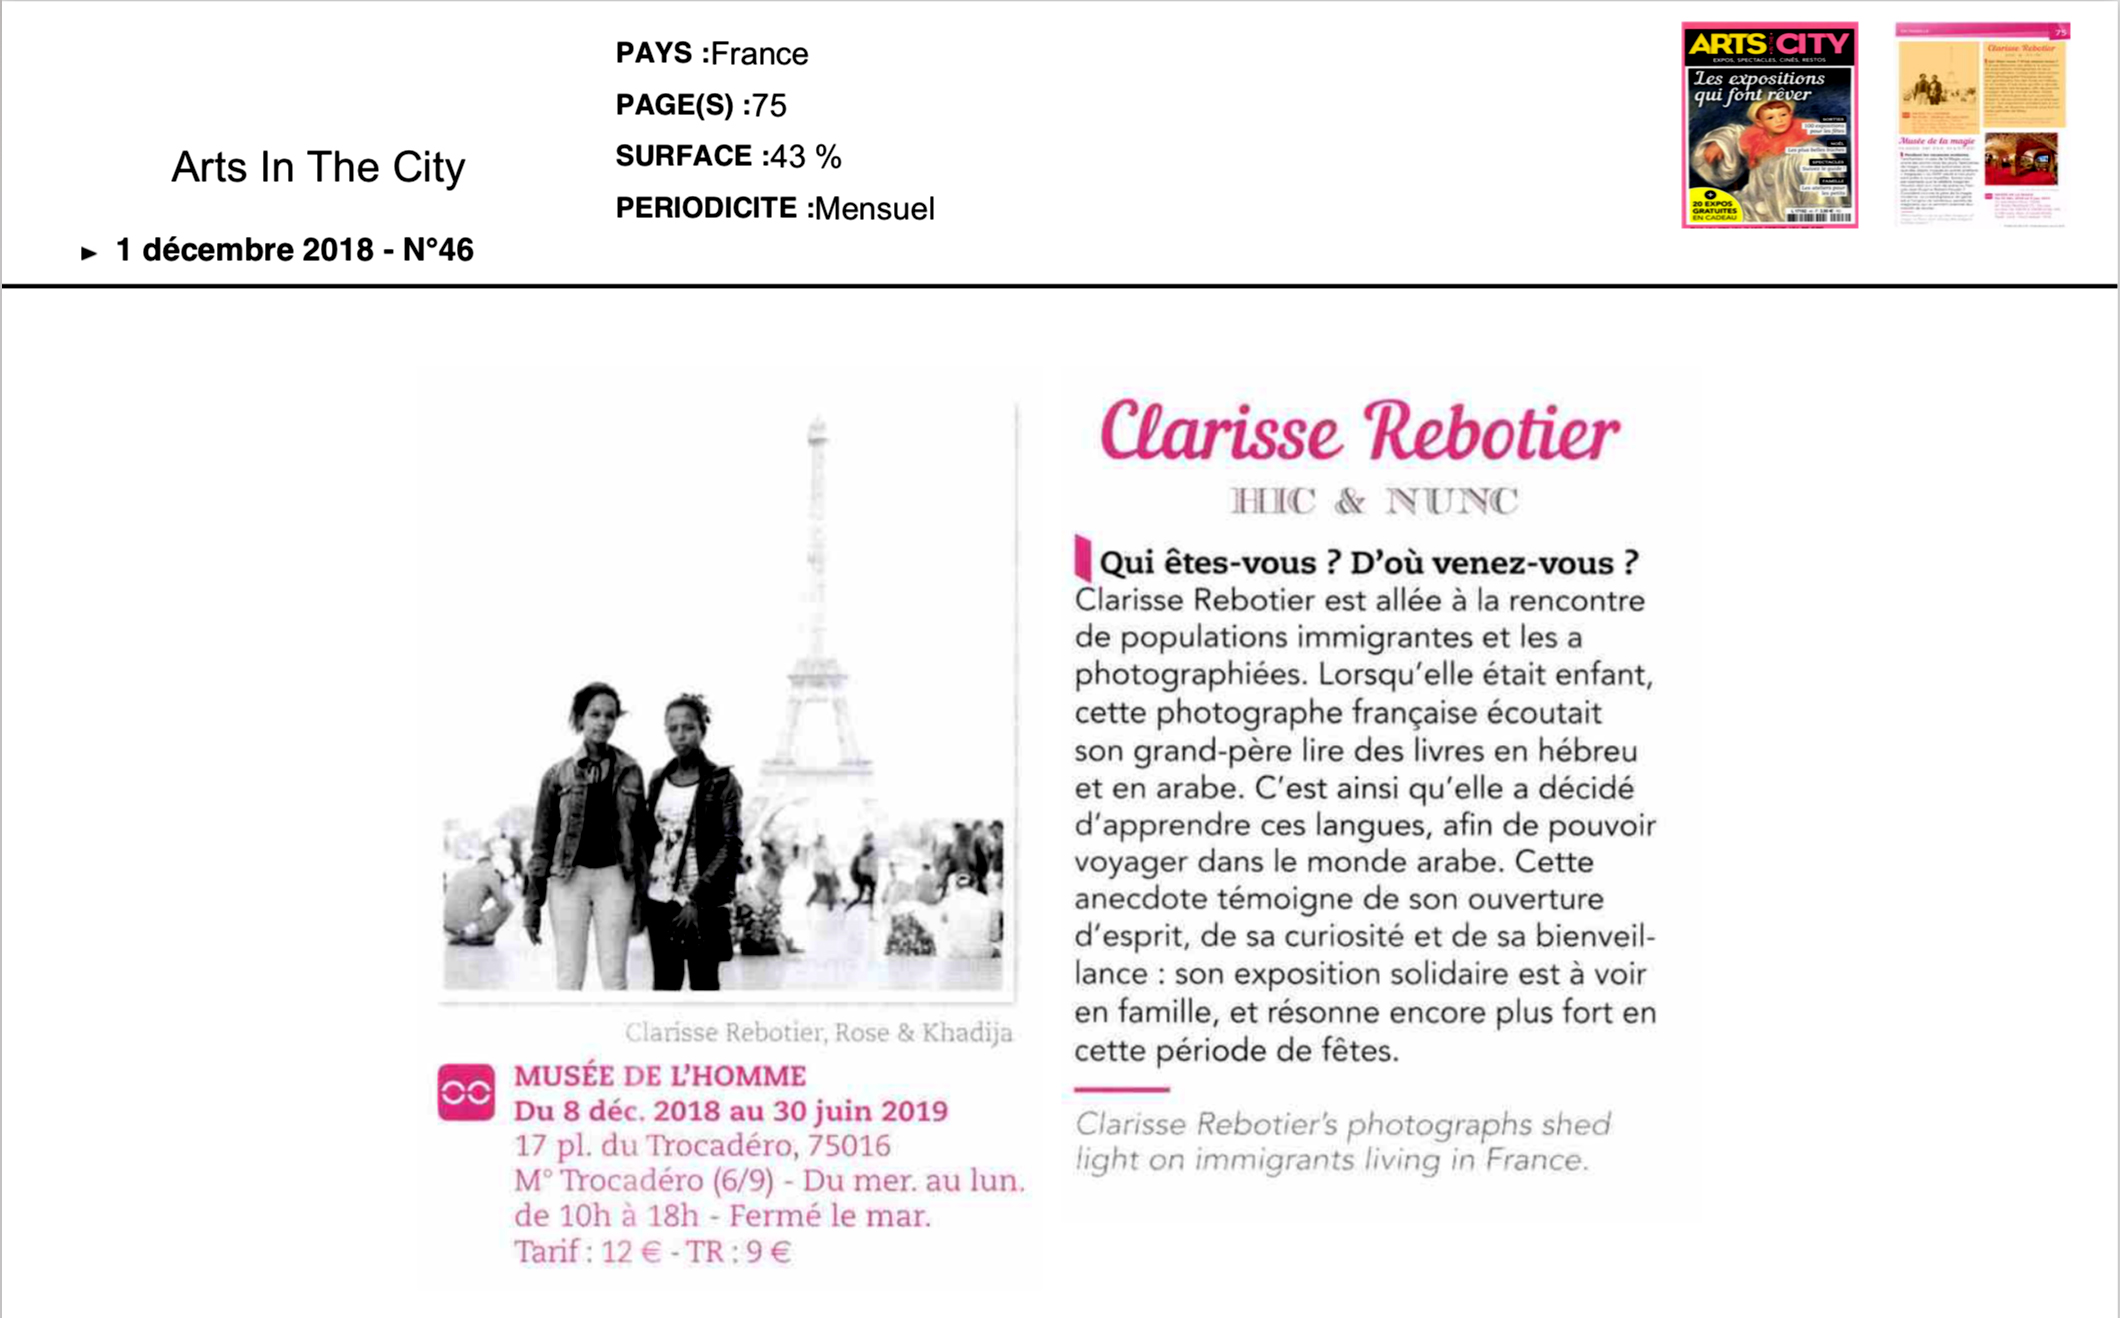 ARTS IN THE CITY, 1 déc 2018 - N°46